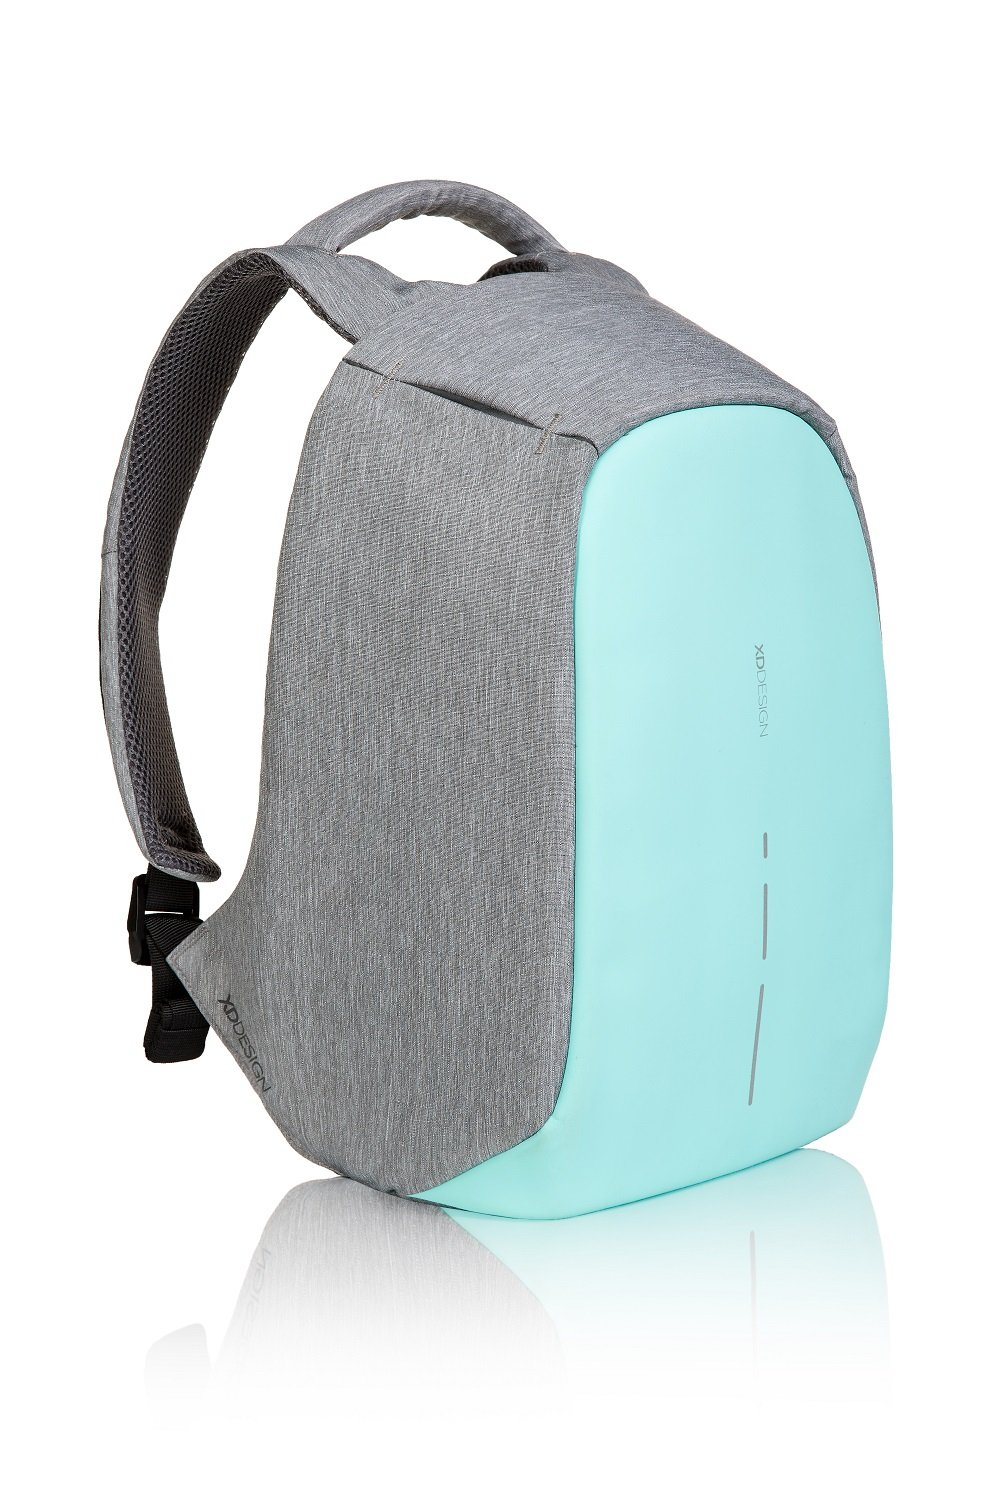 XD Design - Bobby Compact Anti-Theft-Backpack - Mint Green (p705.537)